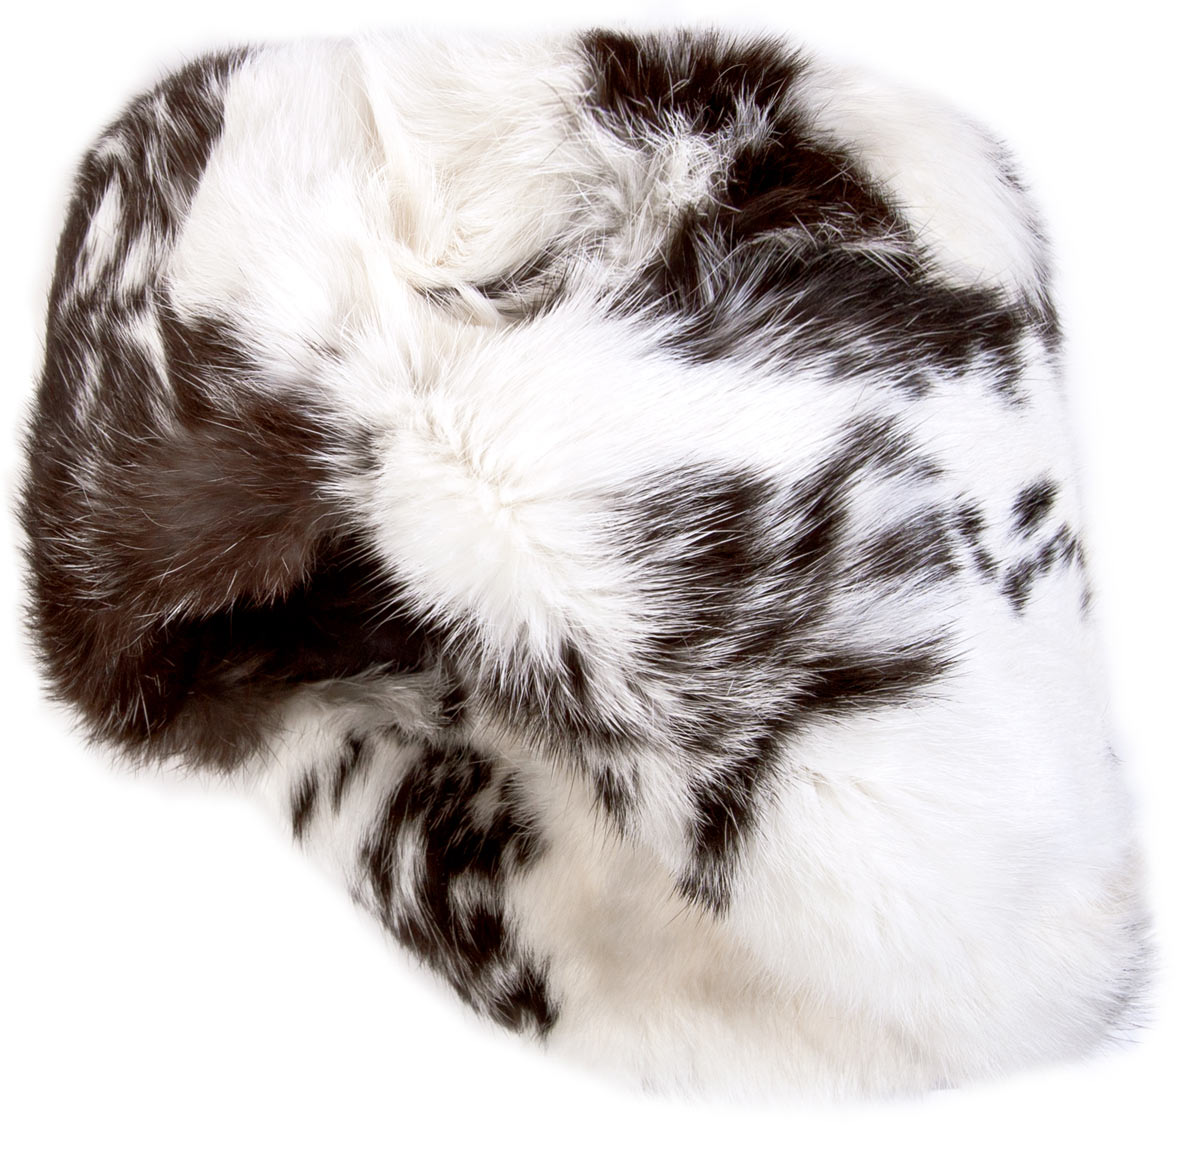 Rabbit fur ushanka winter hat. White and black. 6516f9cddc8